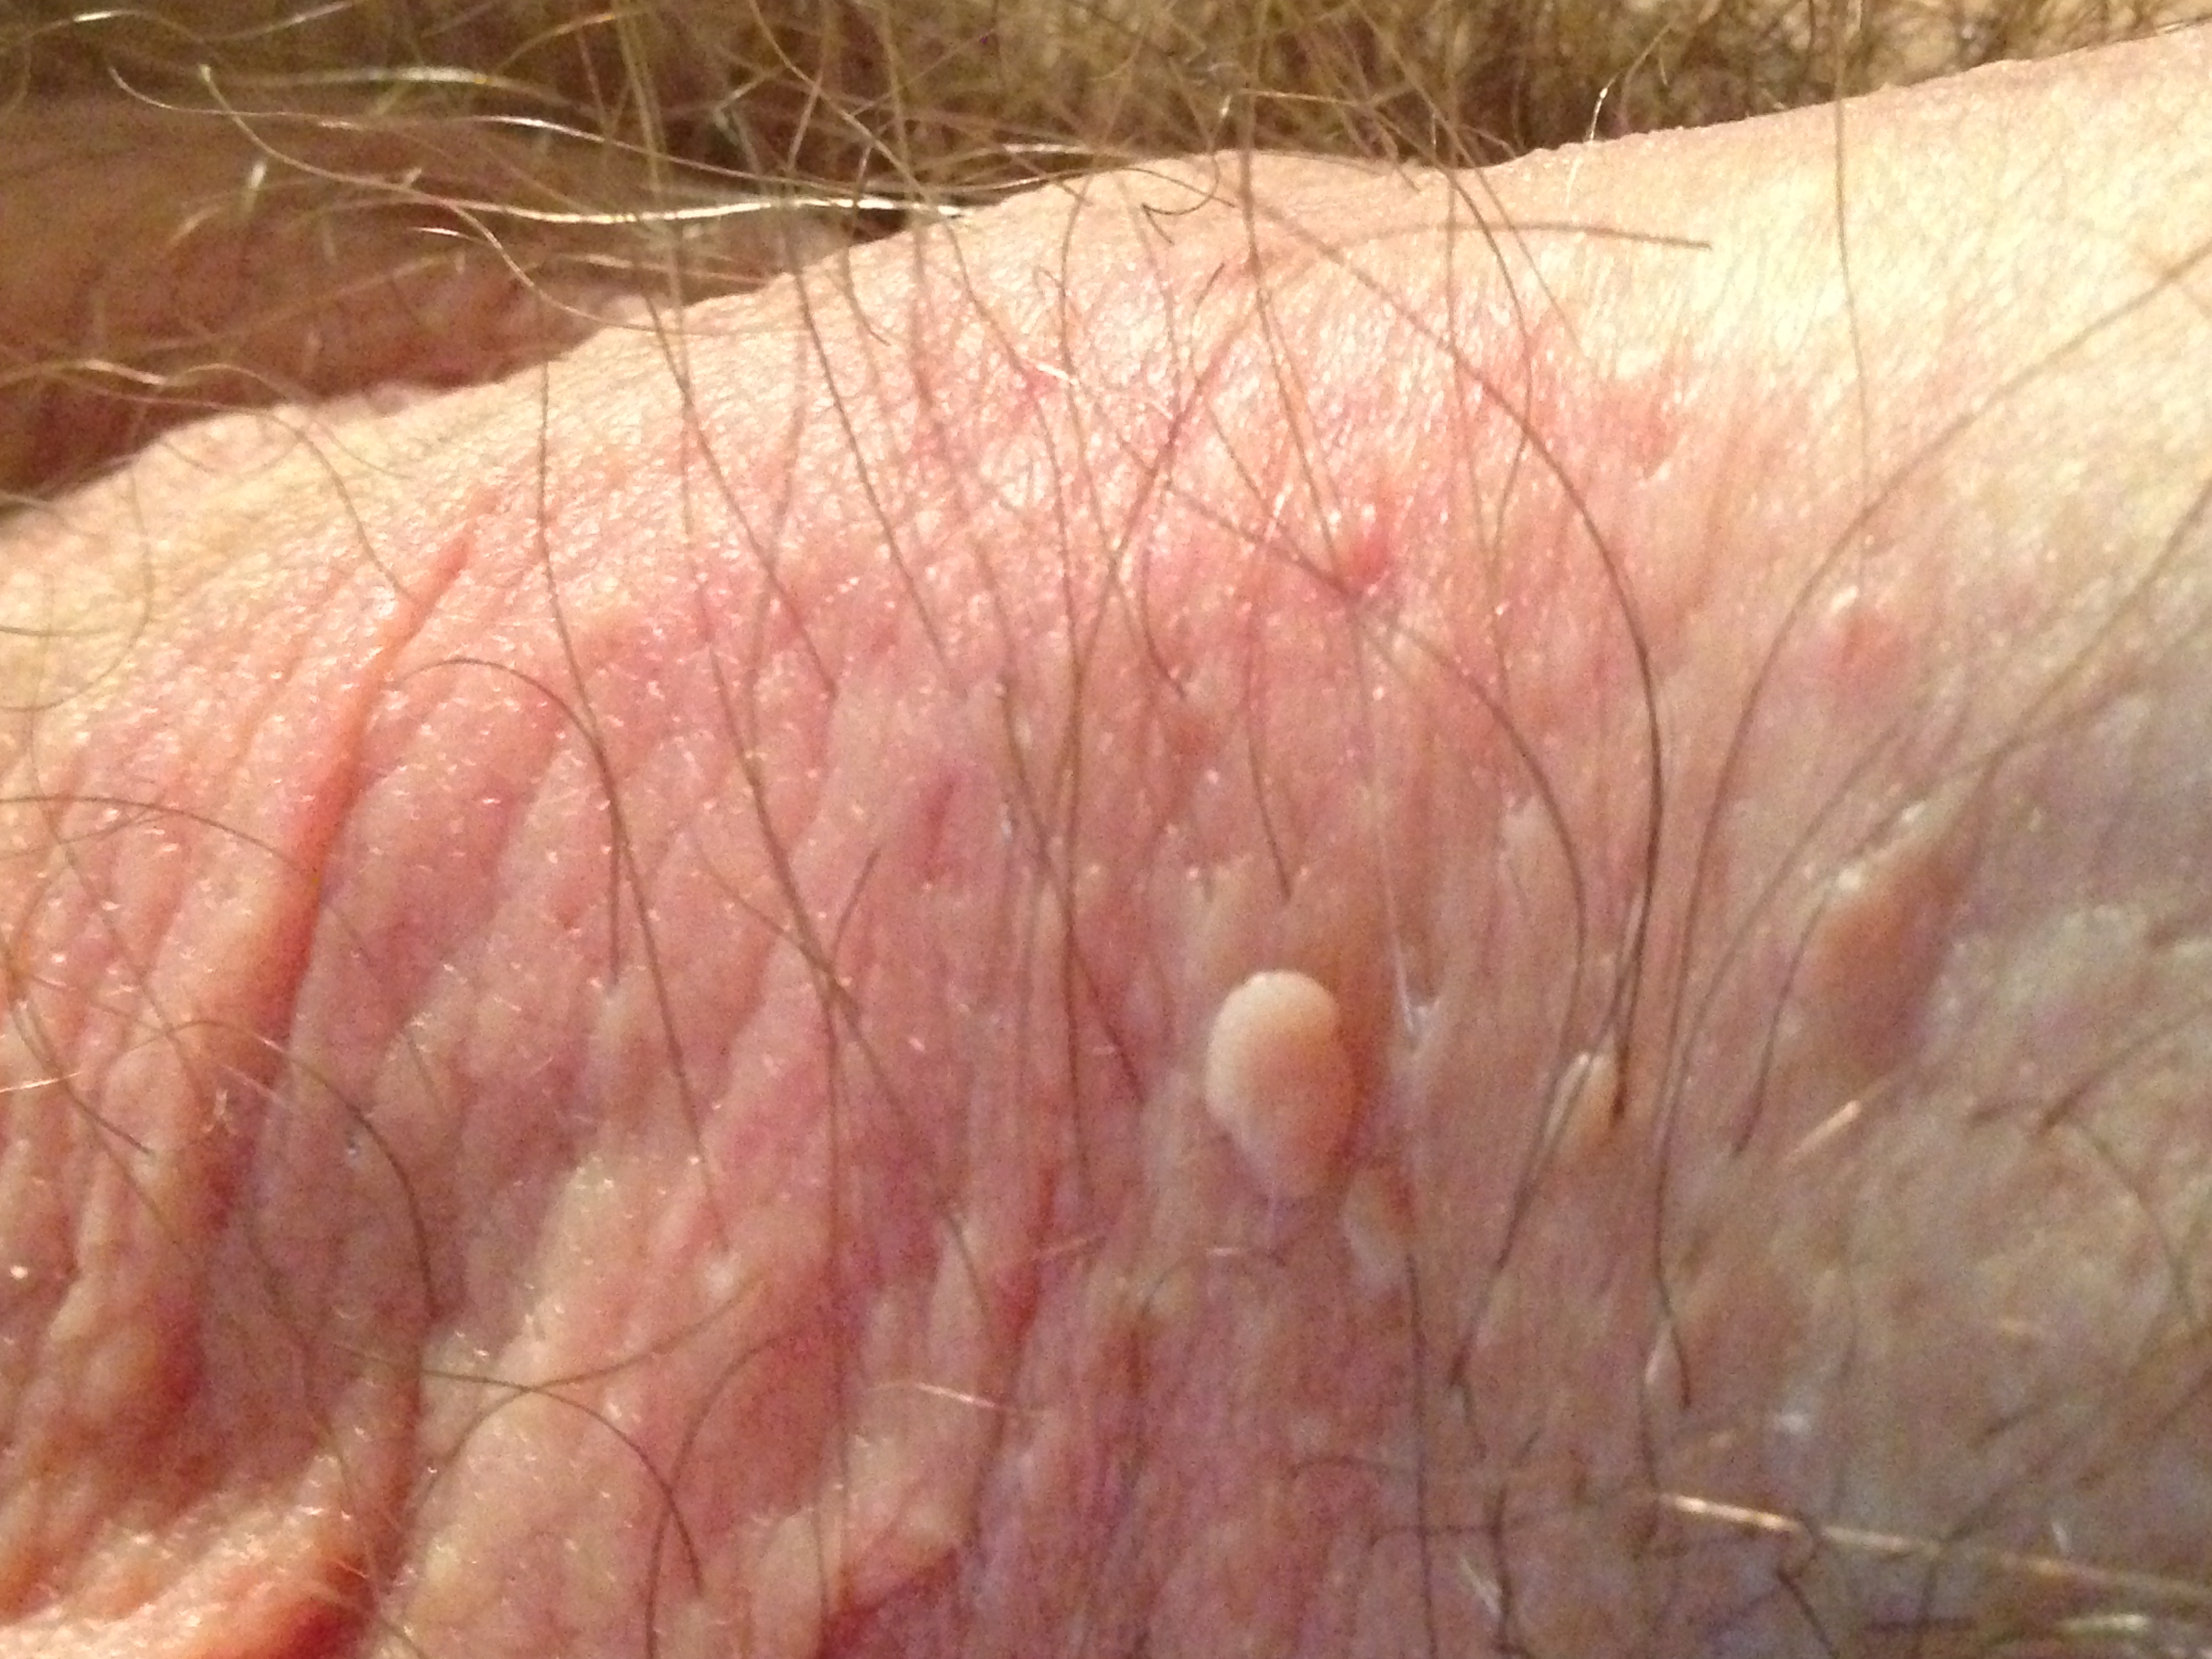 Scabies on the penis